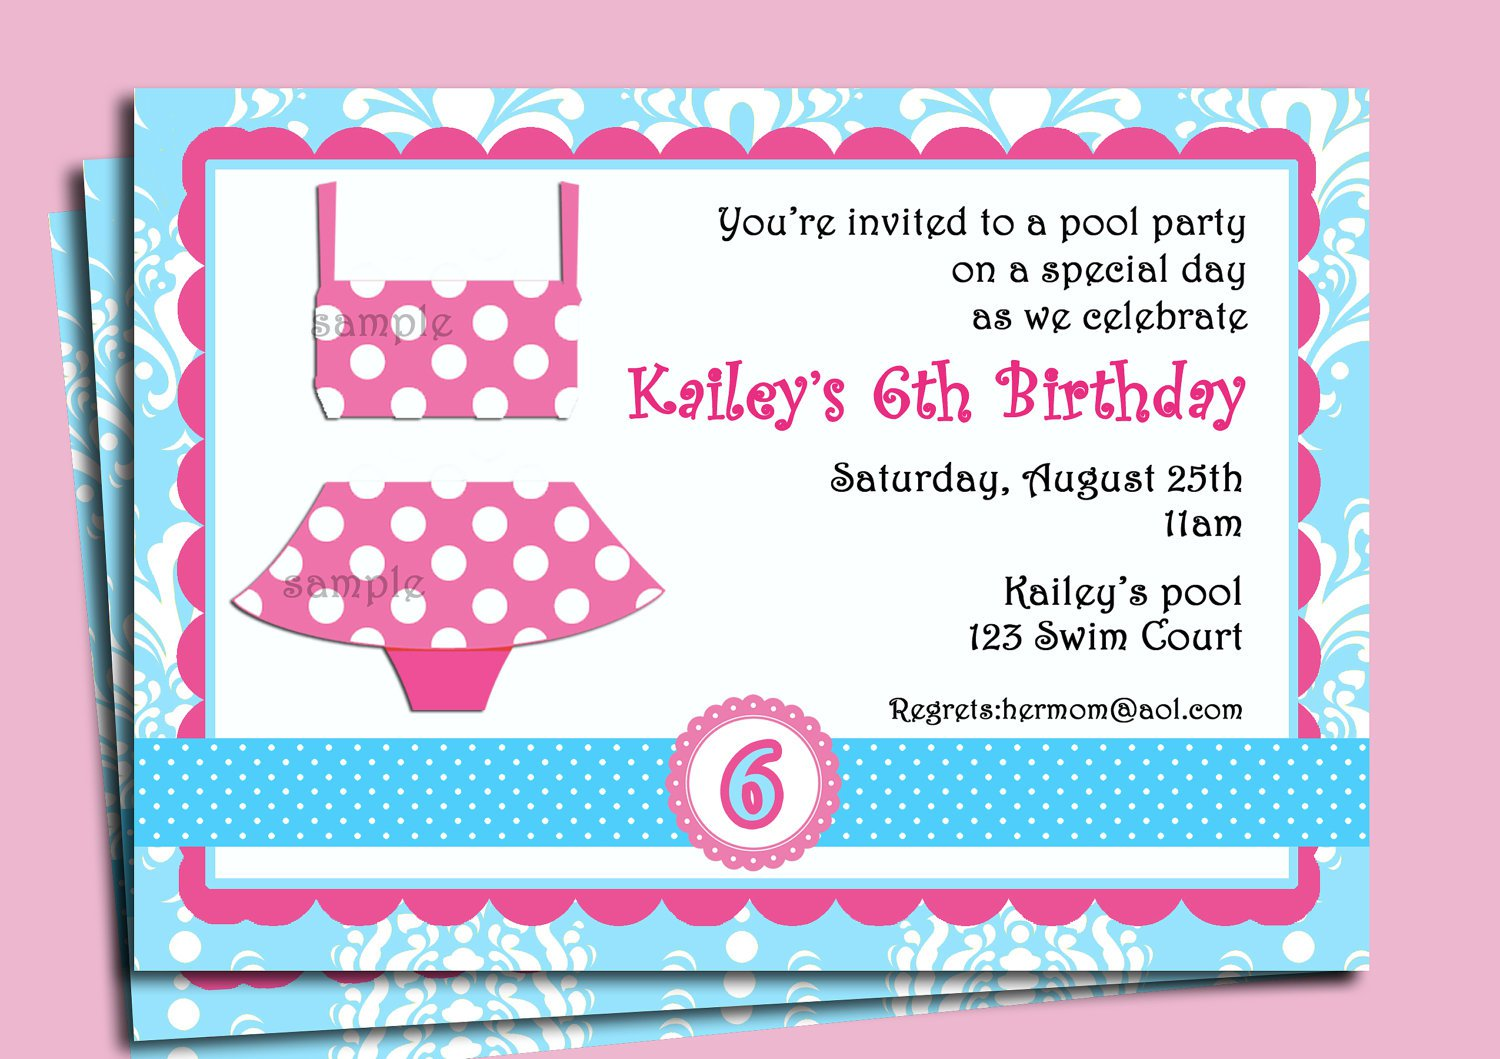 swim party invitation templates - Jcmanagement.co